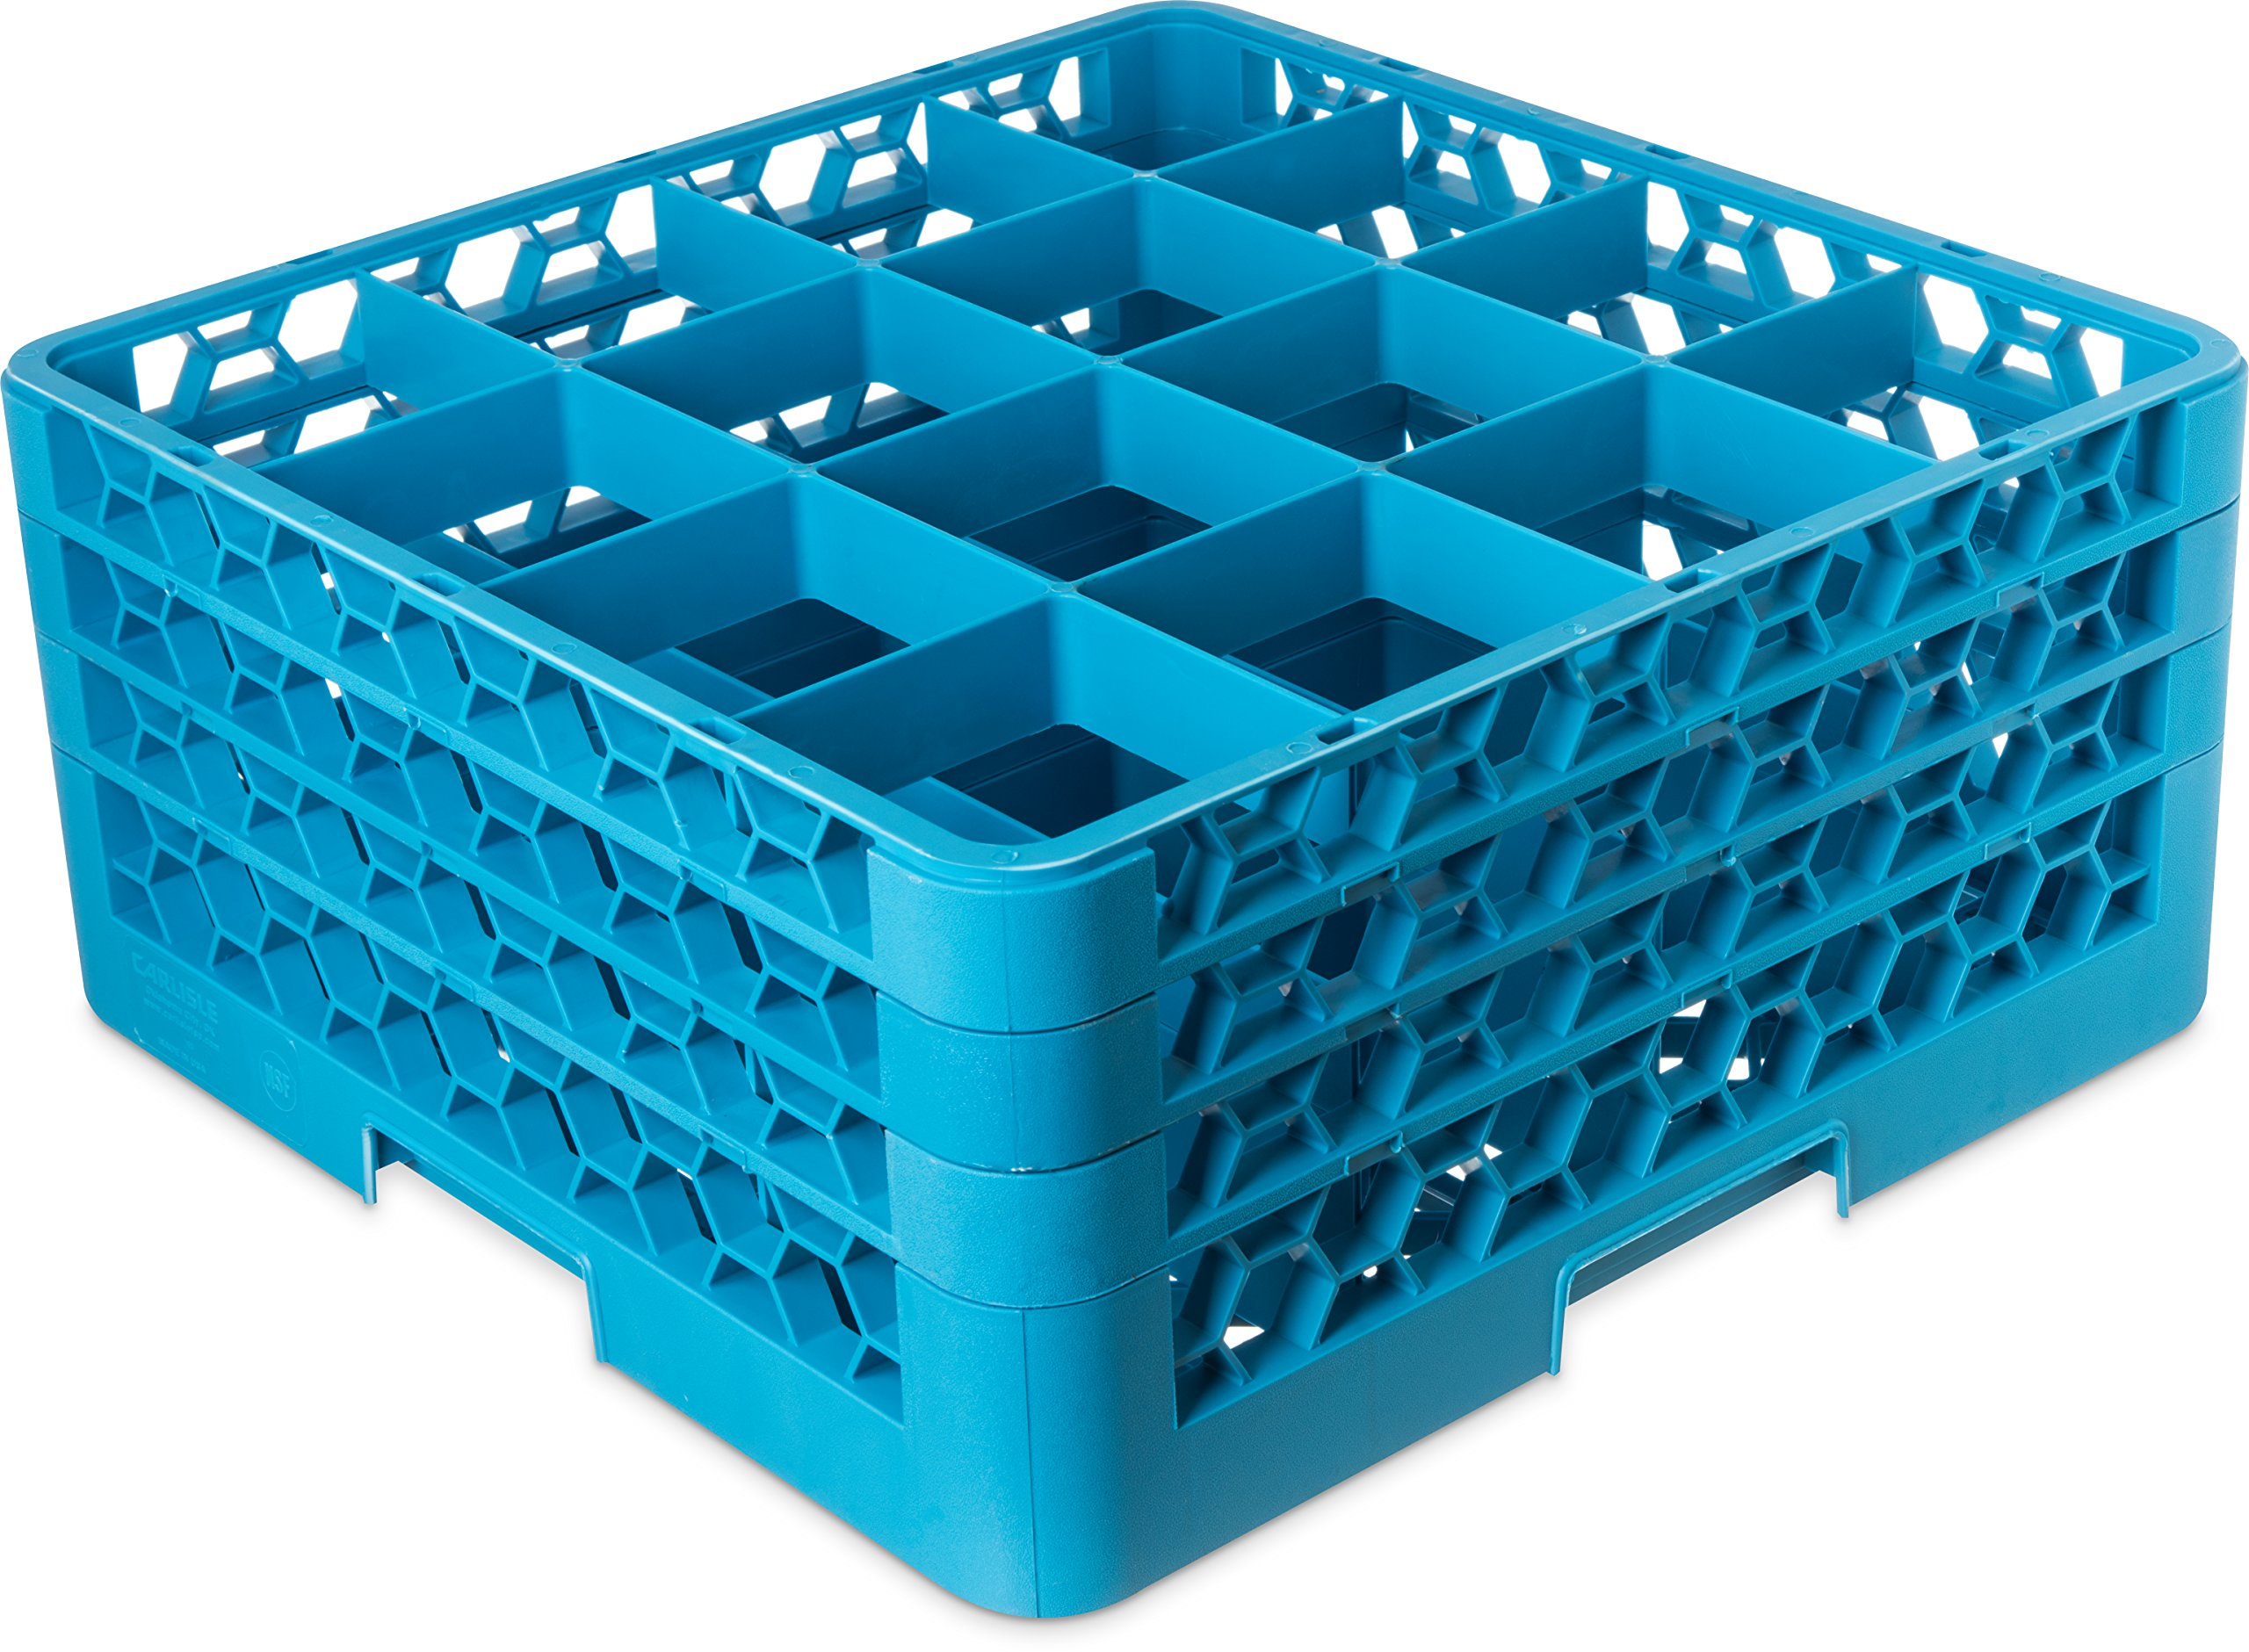 """Carlisle RG16-314 OptiClean 16-Compartment Glass Rack w/ 3 Extenders, Polypropylene, 20.88"""" Length, 20.88"""" Width, 8.72"""" Height, Blue (Case of 2)"""